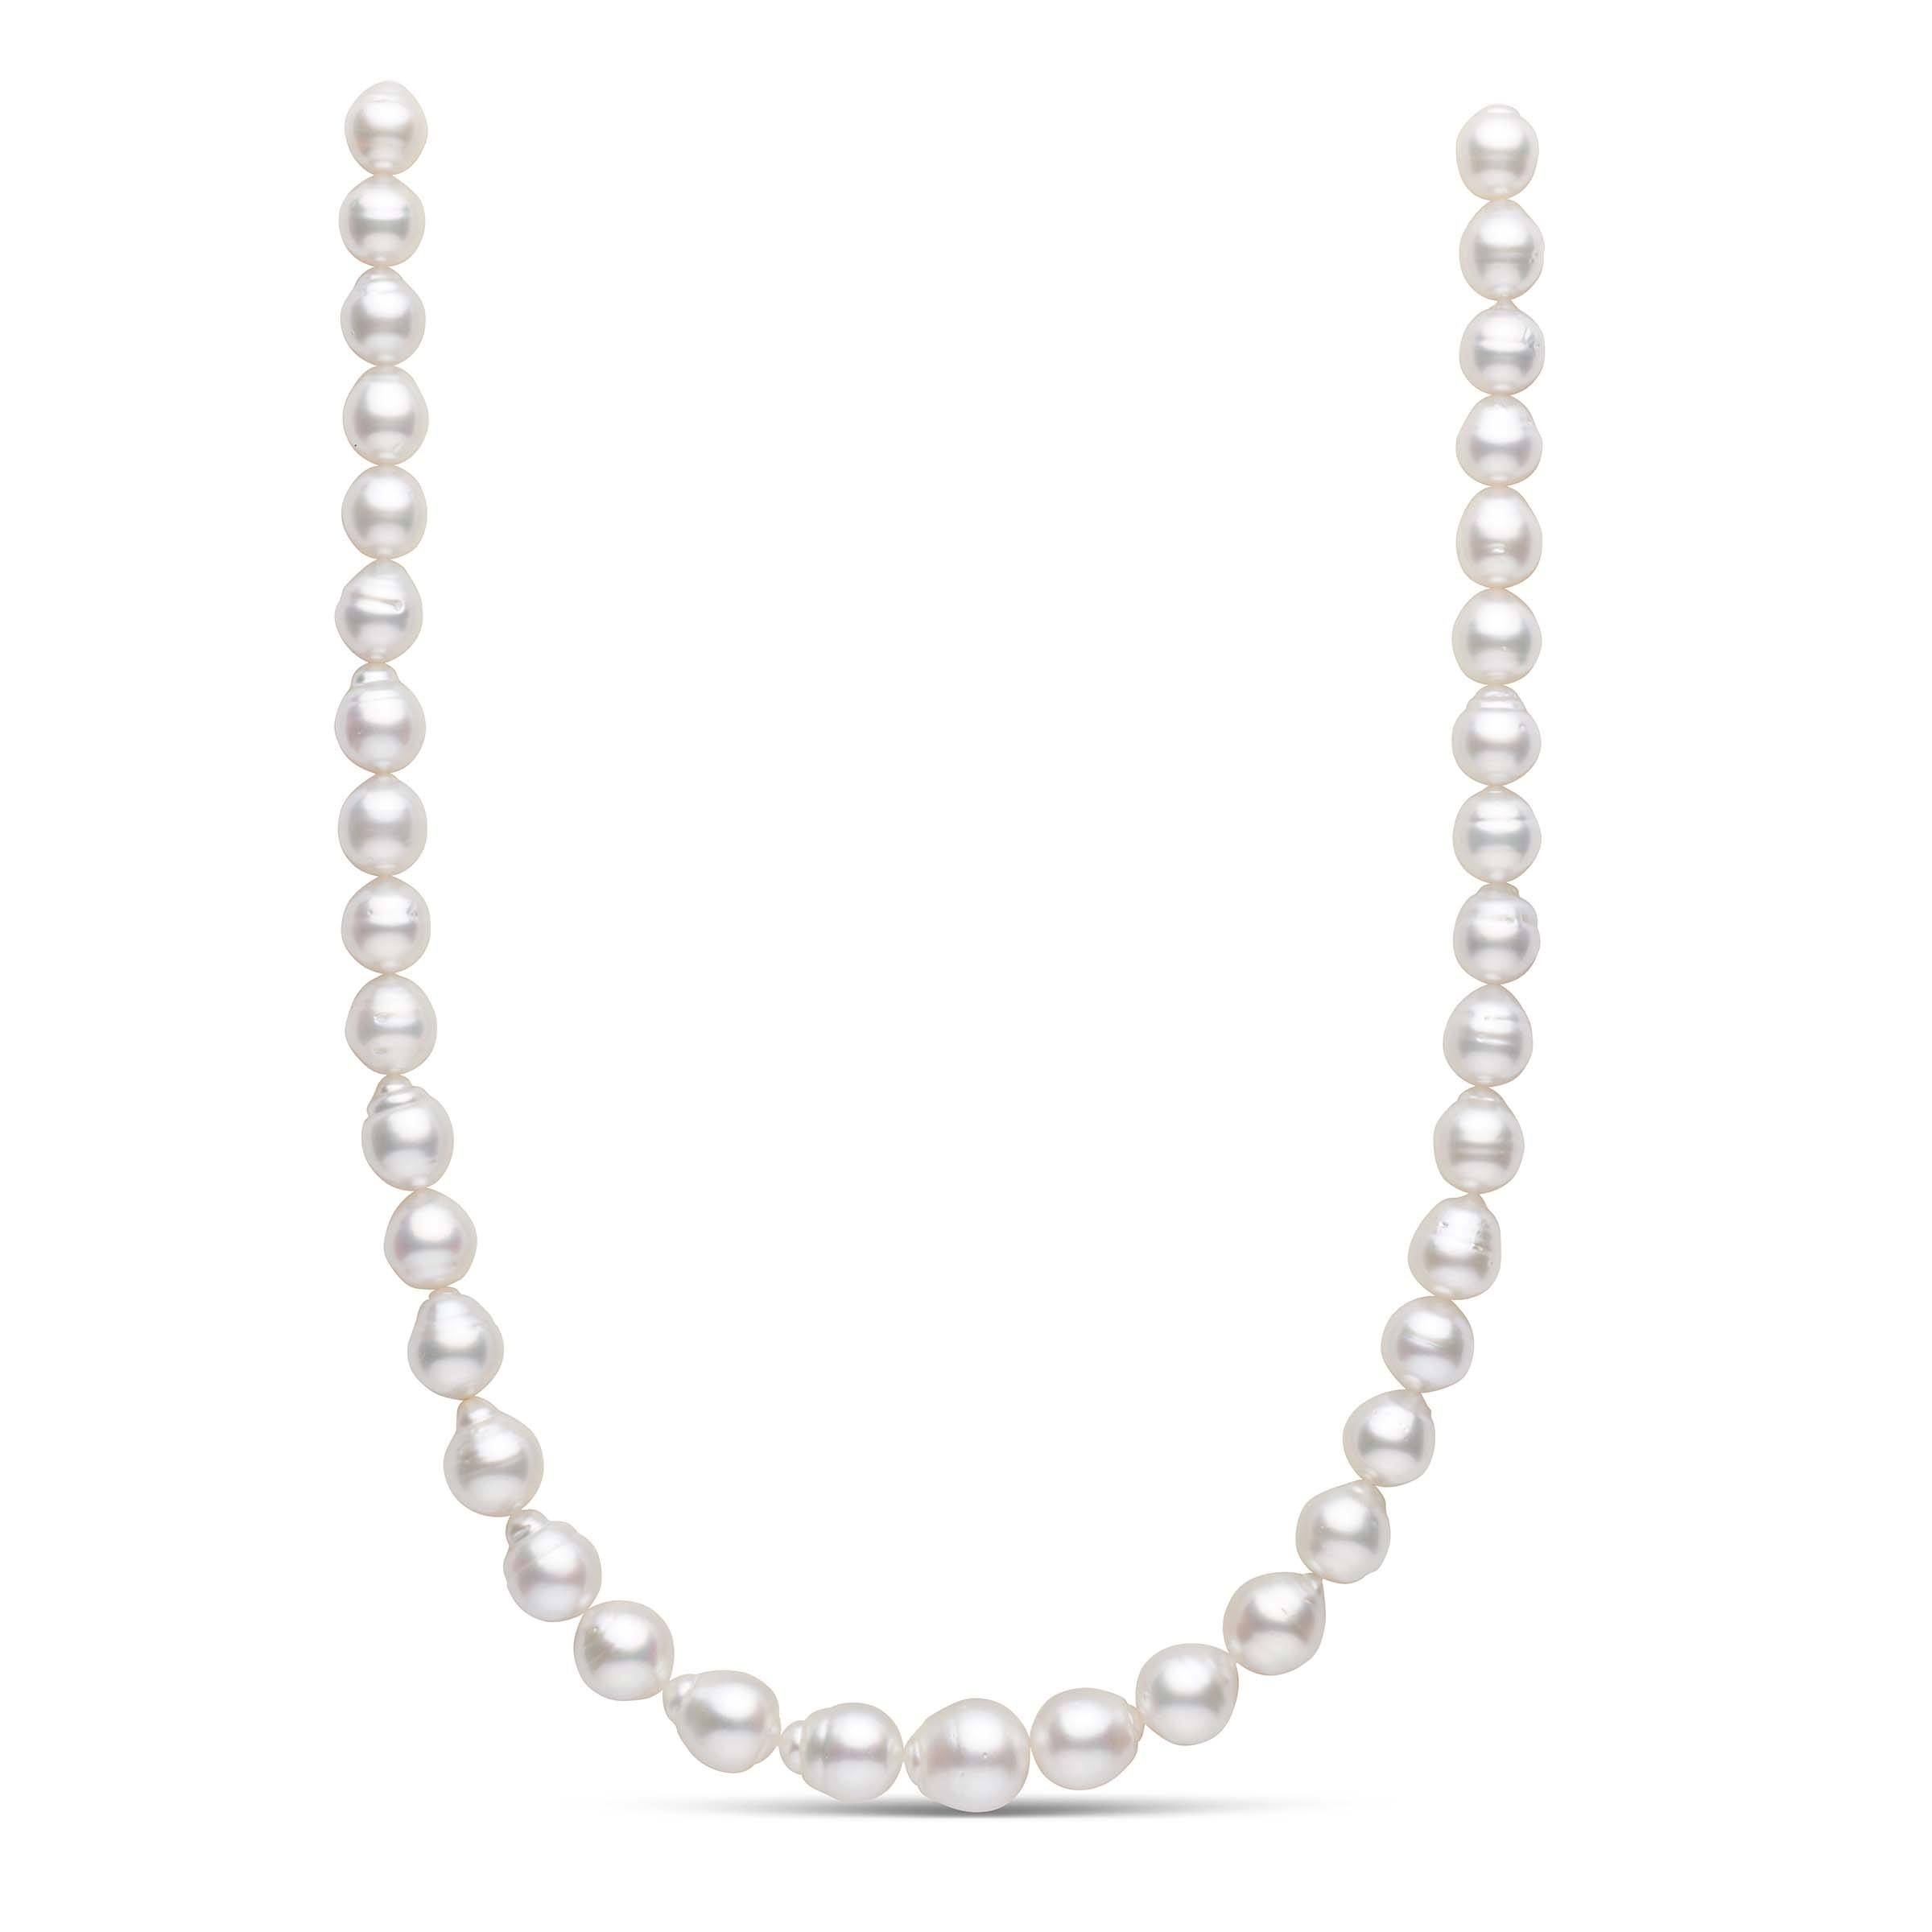 18-inch 9.1-12.1 mm AA+/AAA Baroque White South Sea Pearl Necklace